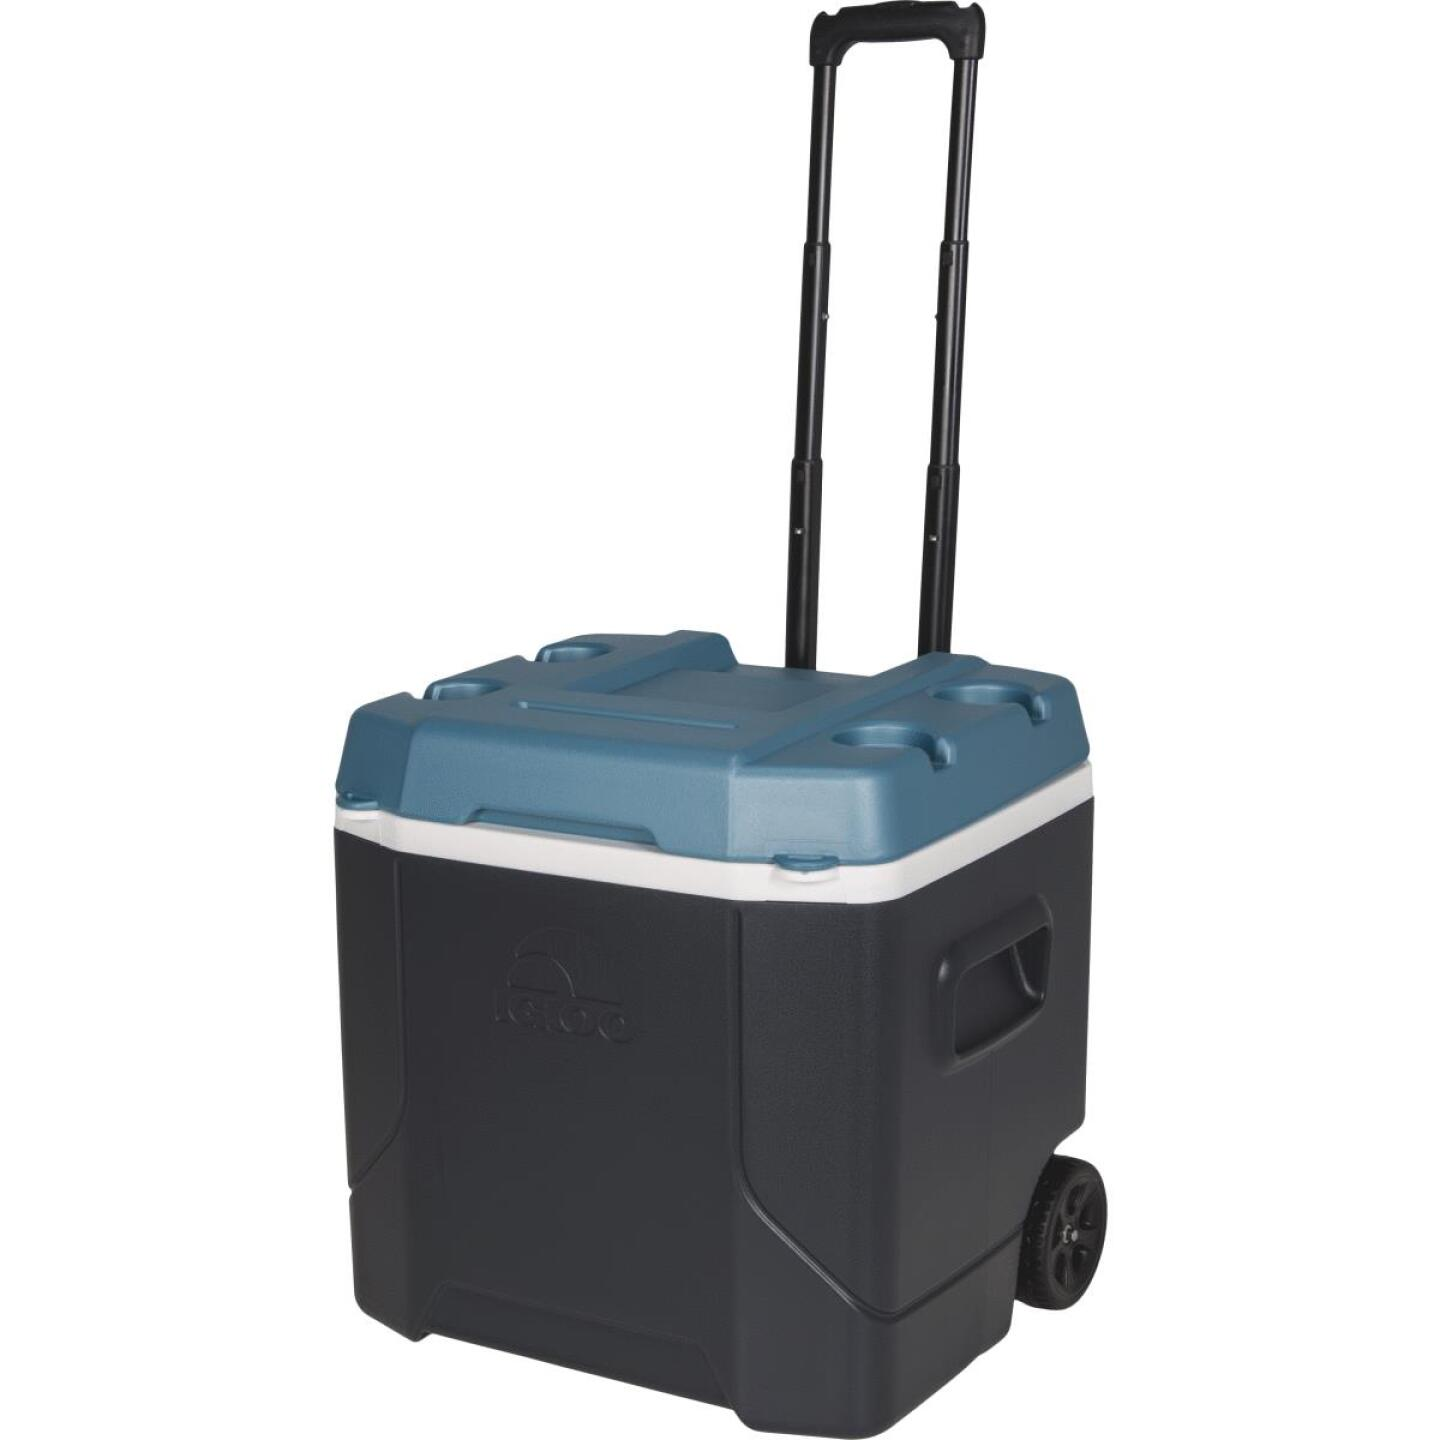 Igloo MaxCold Profile 54 Qt. 2-Wheeled Cooler, Jet Carbon & Ice Blue Image 1